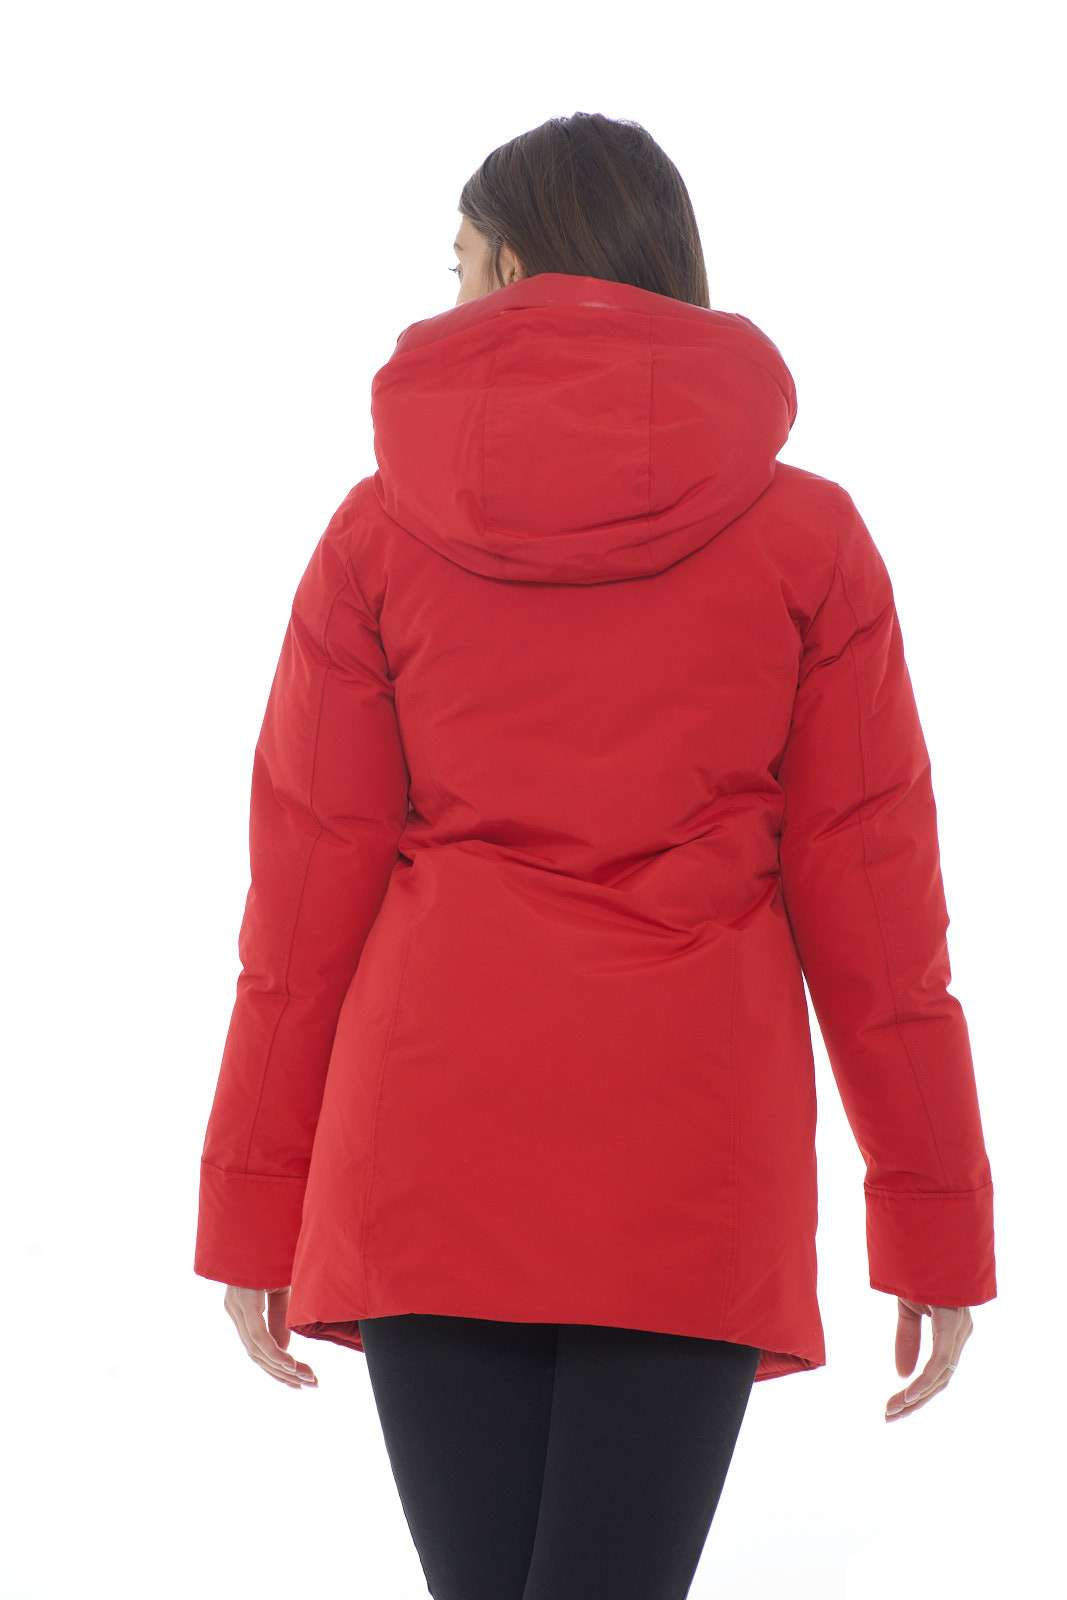 https://www.parmax.com/media/catalog/product/a/i/AI-outlet_parmax-parka-donna-Woolrich-WWCPS2769-C.jpg